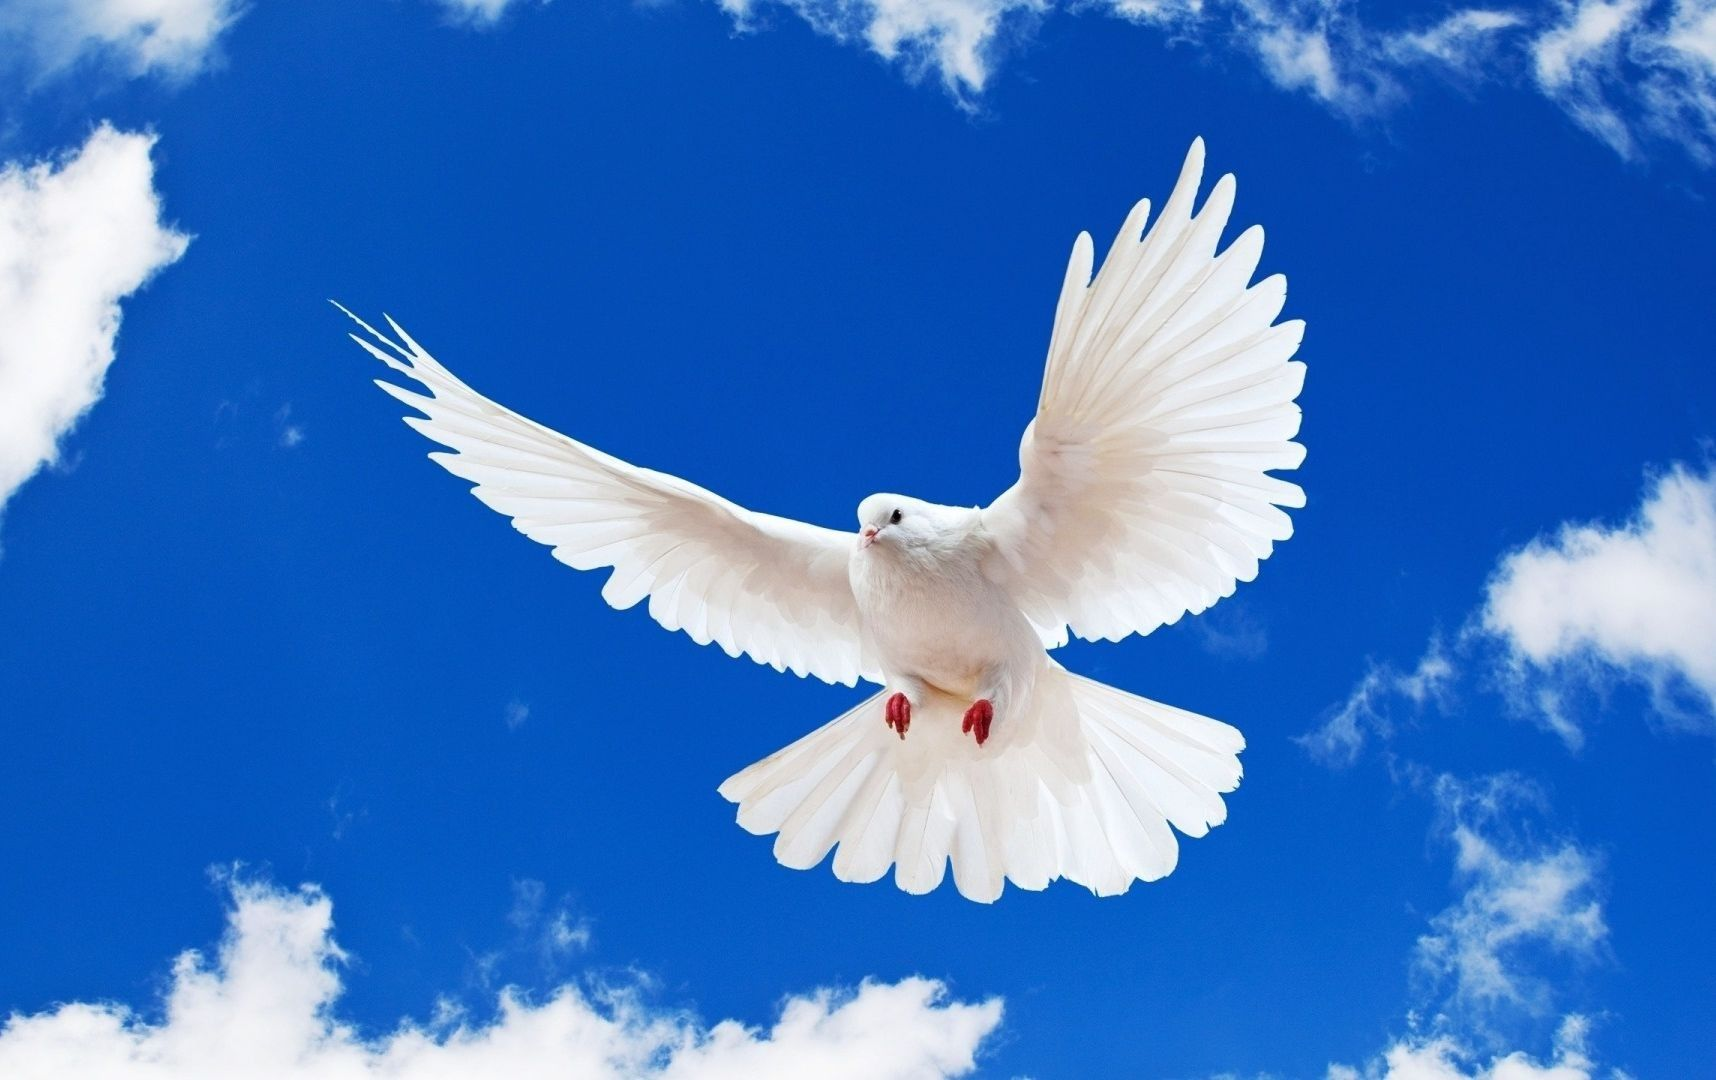 Blue Sky White Dove Flying New Desktop Wallpaper In Hd Free Dove Images Bird Wallpaper Birds Flying